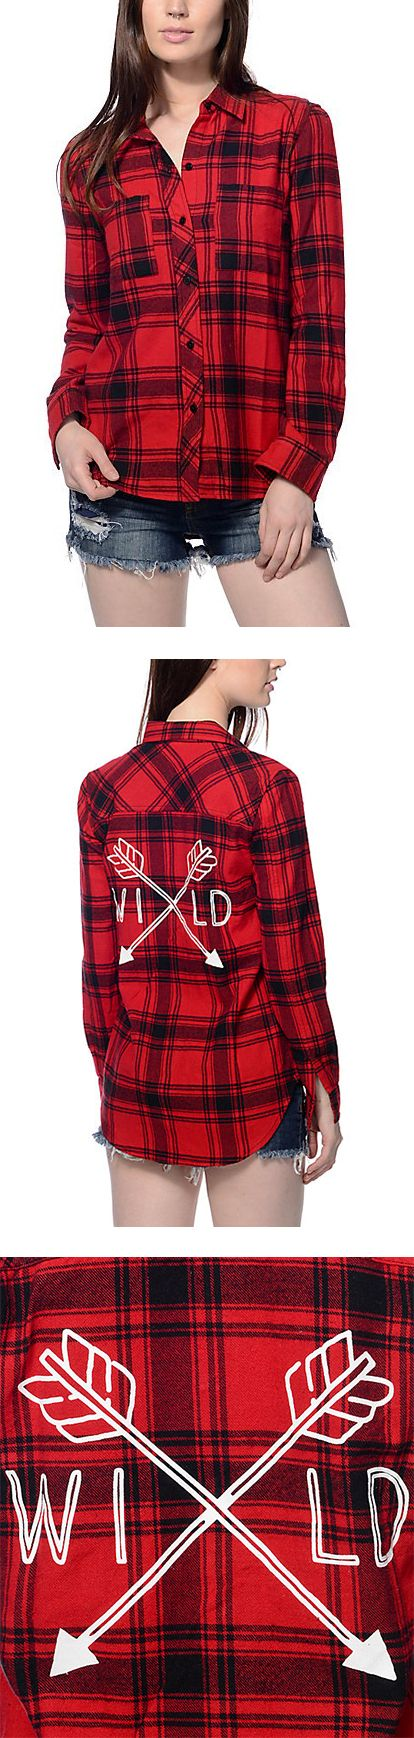 """Throwback to the early 90's and the grunge period, this Ashton Wild red and black flannel by Empyre screams to be paired with ripped pants and cropped tops. The screen print on the back reads """"Wild"""" with two bows crossed within. This flannel is the ultimate look for your throwback style."""